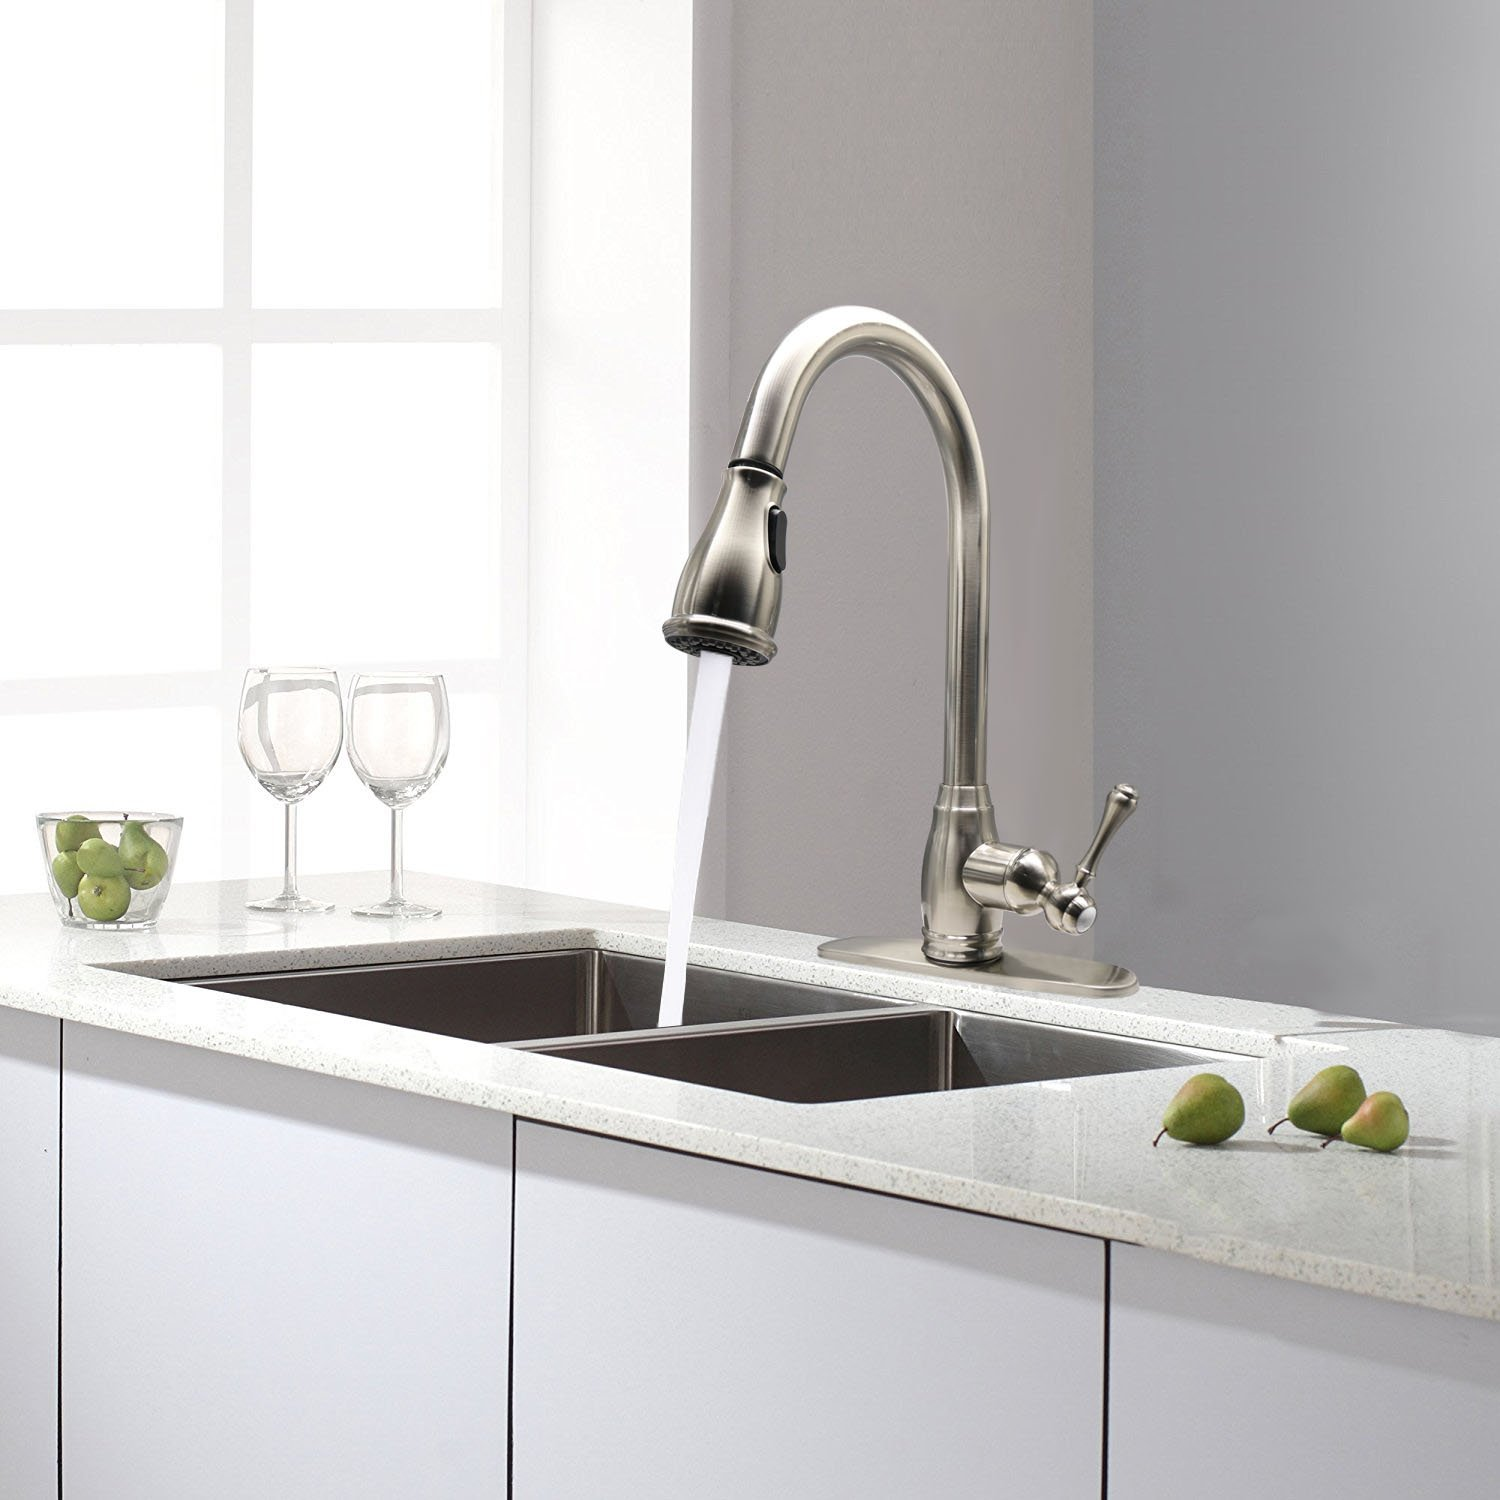 Brushed Nickel High-Arch Bar Best Commercial KINFAUCETS Kitchen Sink Faucet 360 Degree Swivel Spout Pull Out Sprayer Stainless Steel Vanity Bathroom Lavatory Single Handle